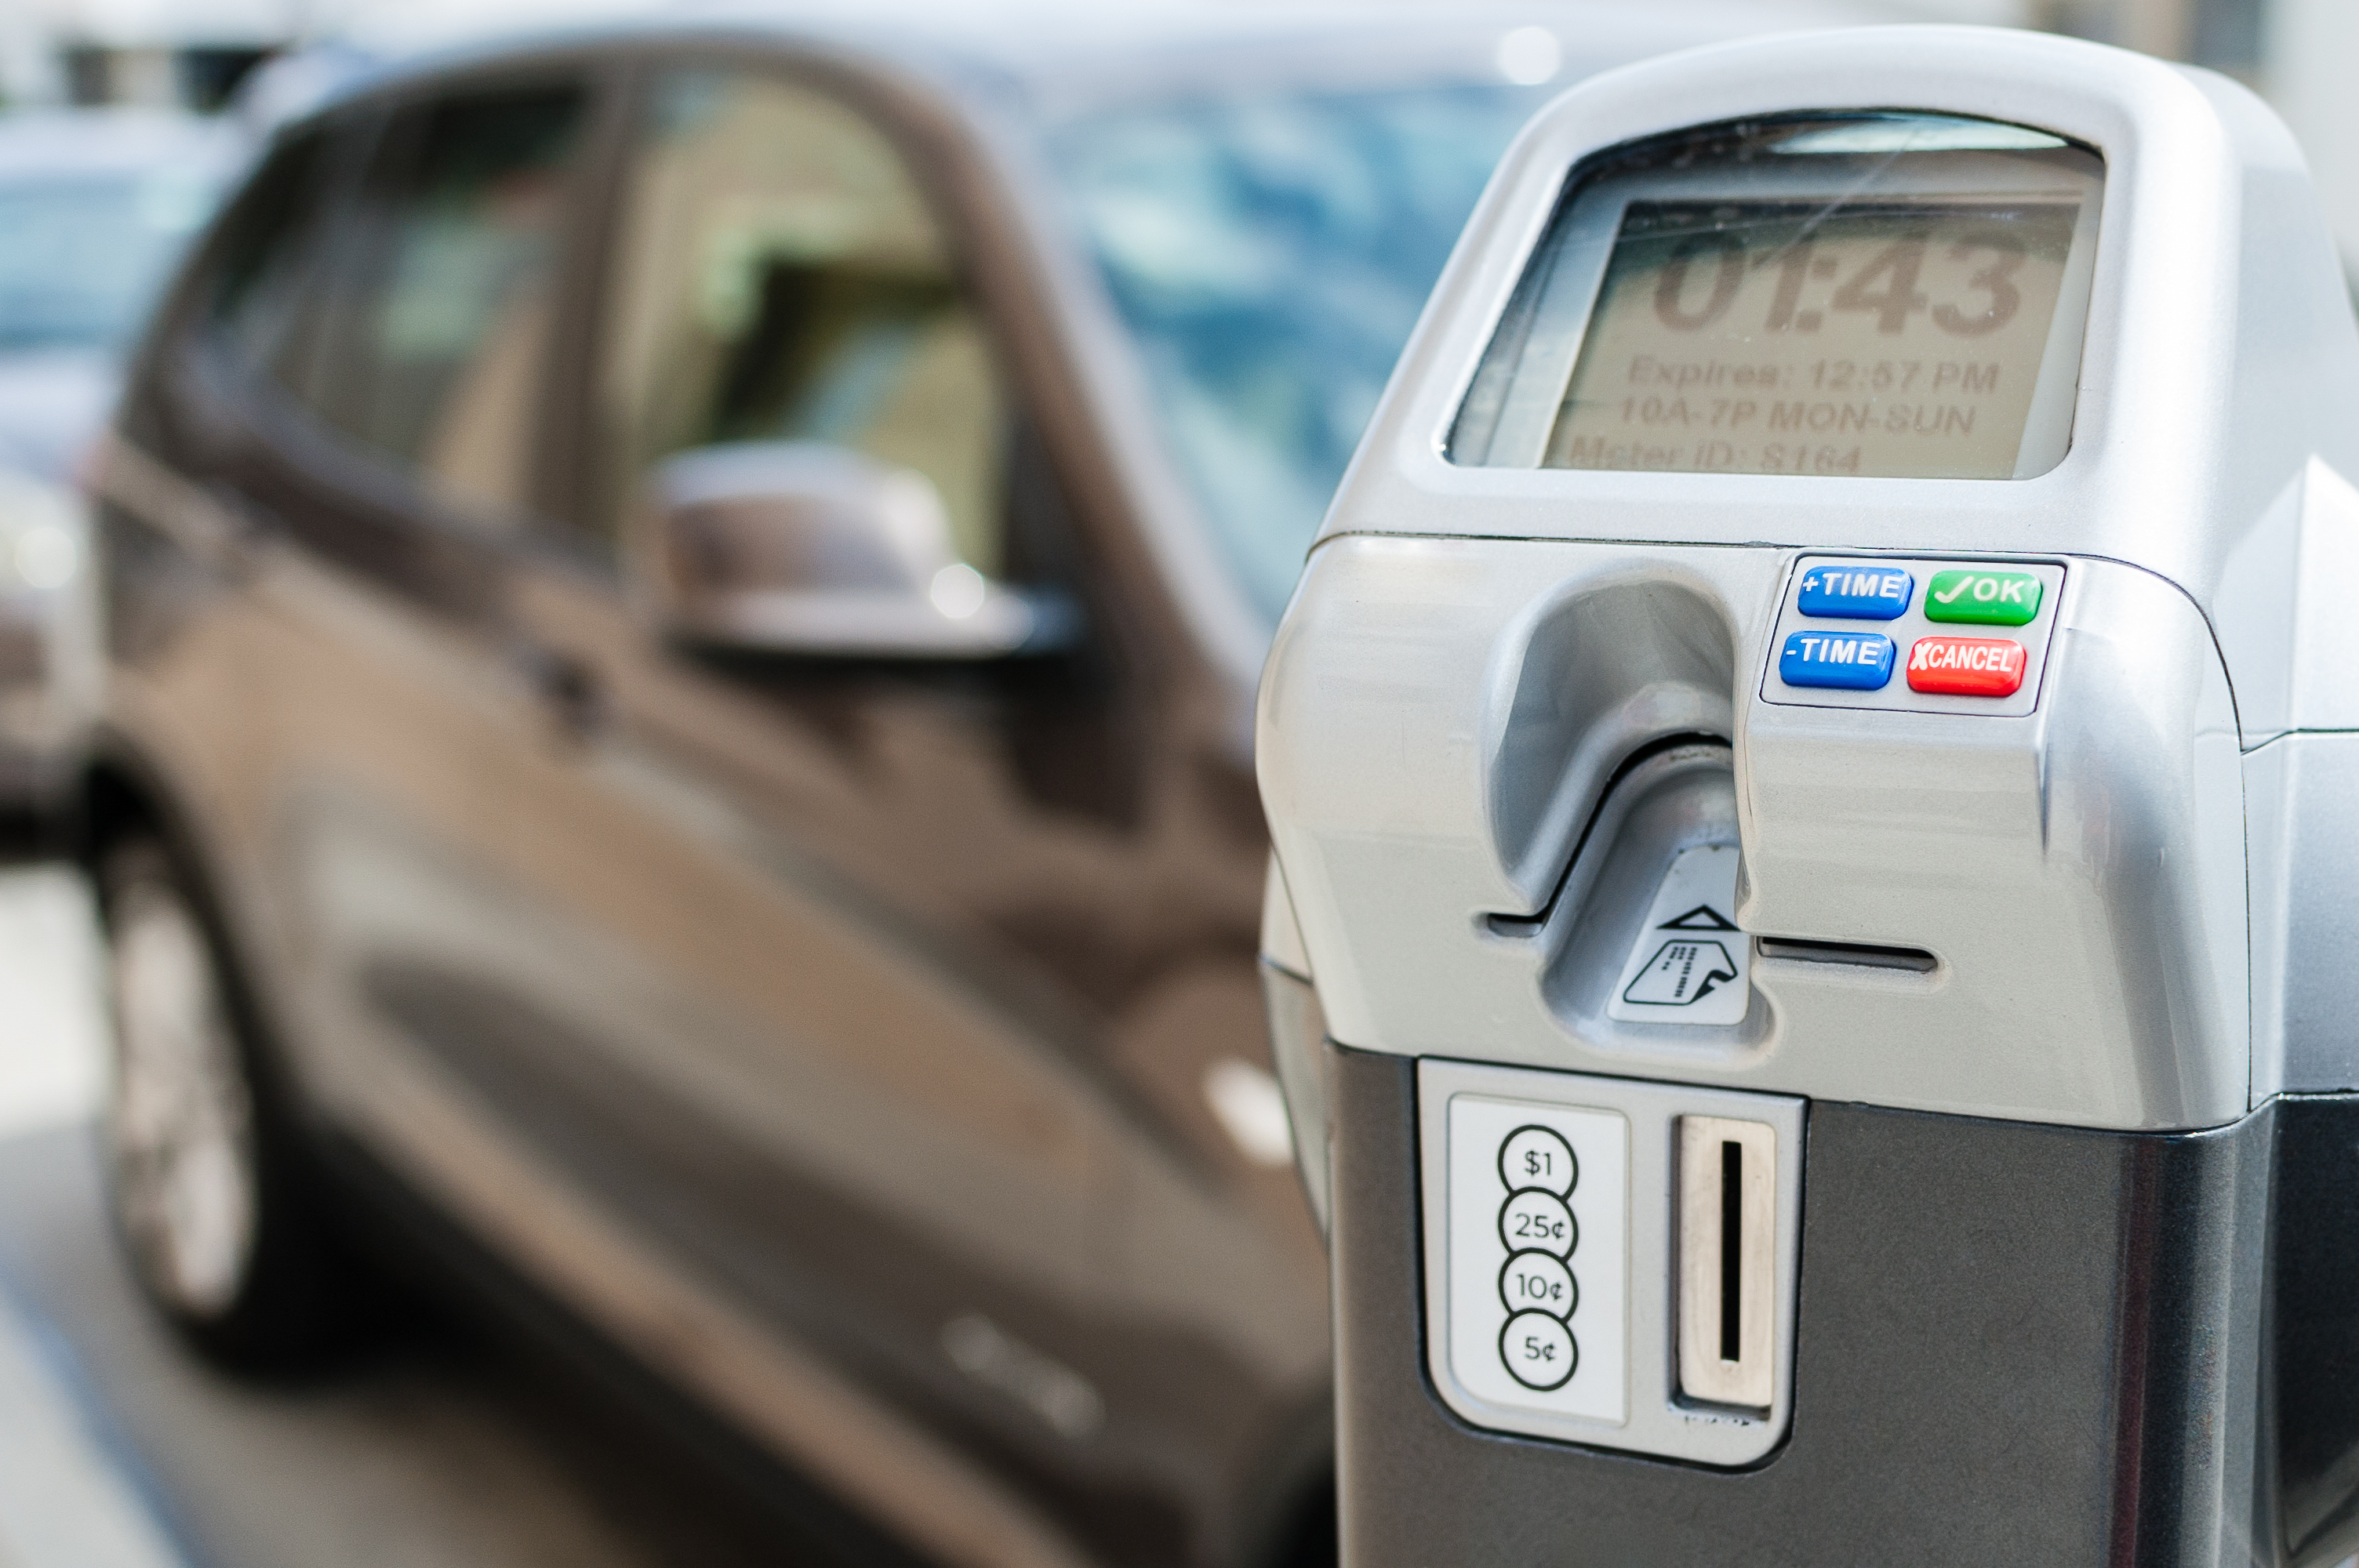 Electronic/digital parking meter with time left